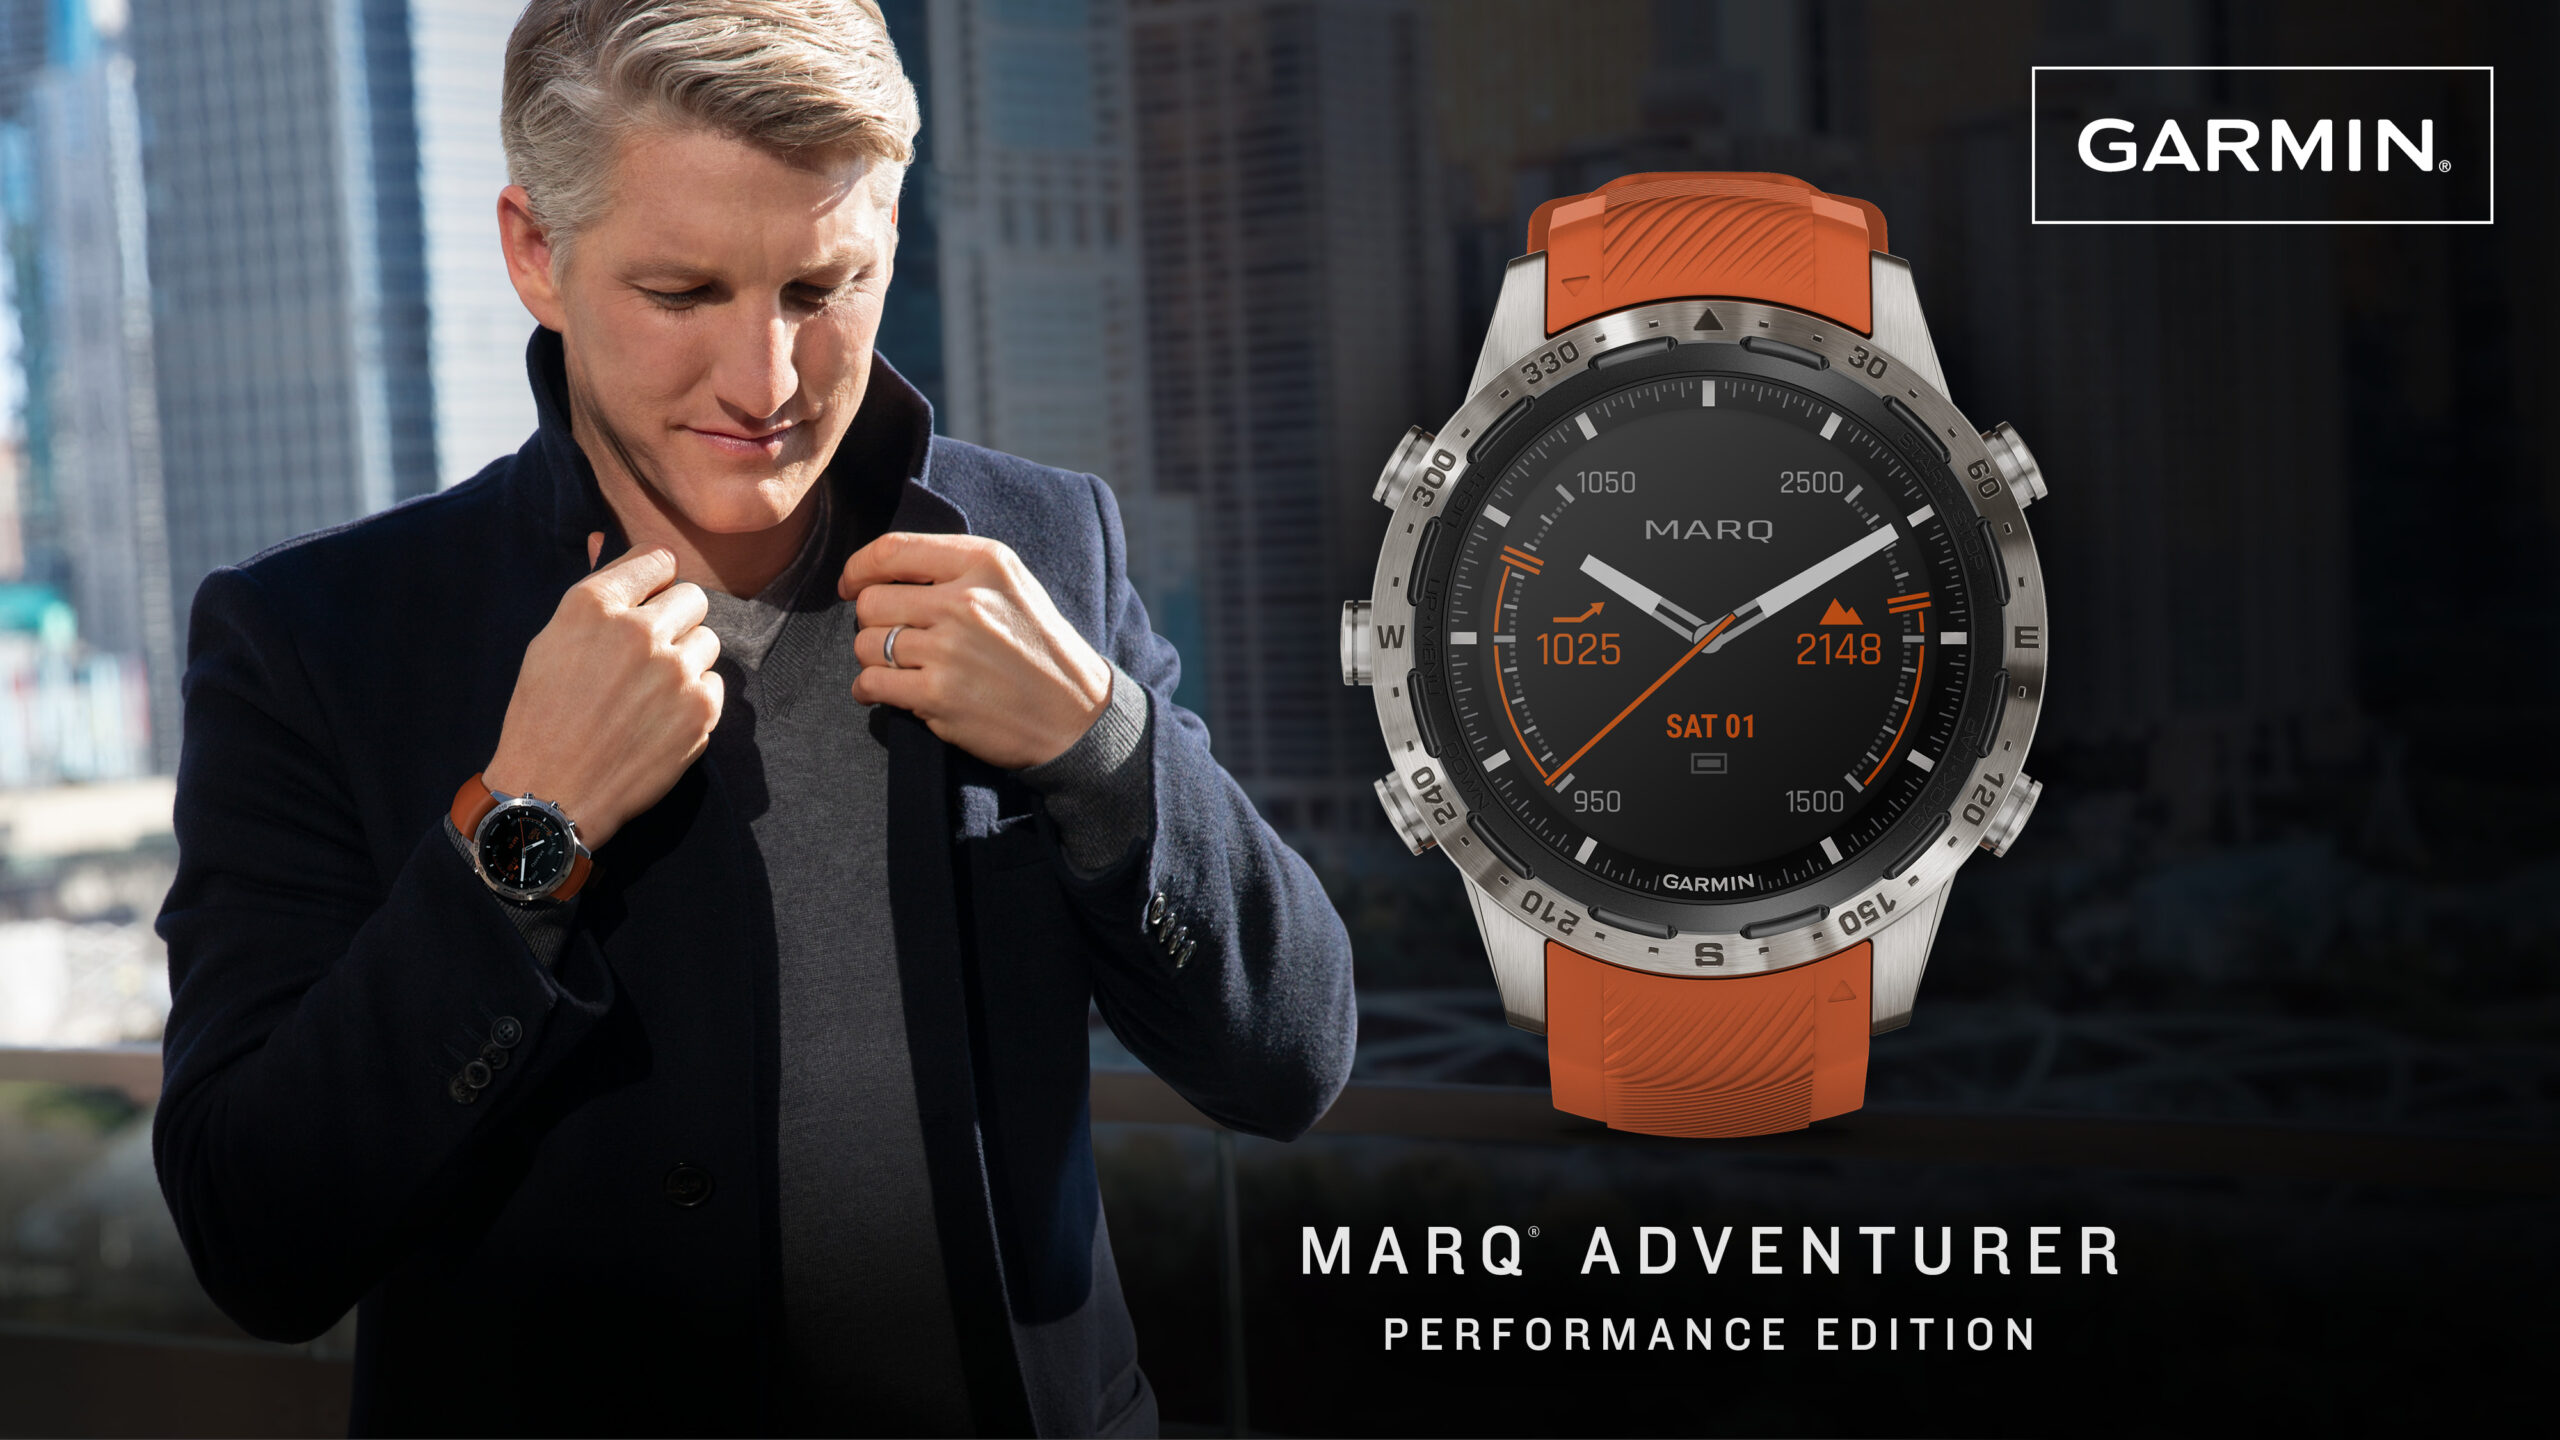 Garmin MARQ Adventurer Performance Edition